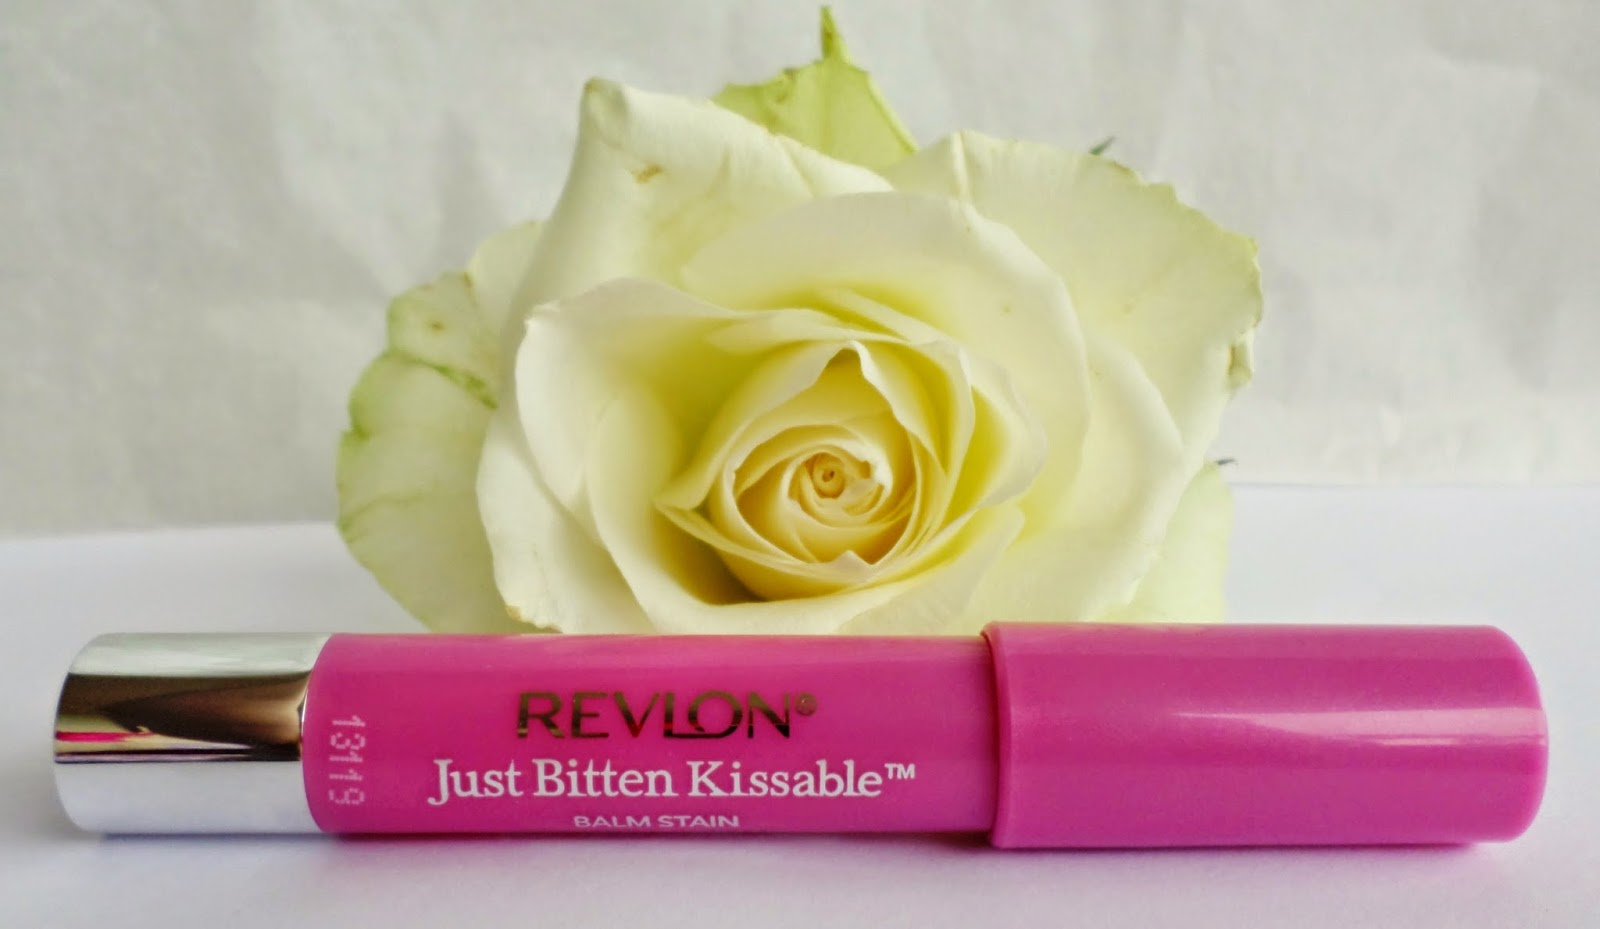 Revlon Just Bitten Kissable Balm Stain in 'Cherish 015'